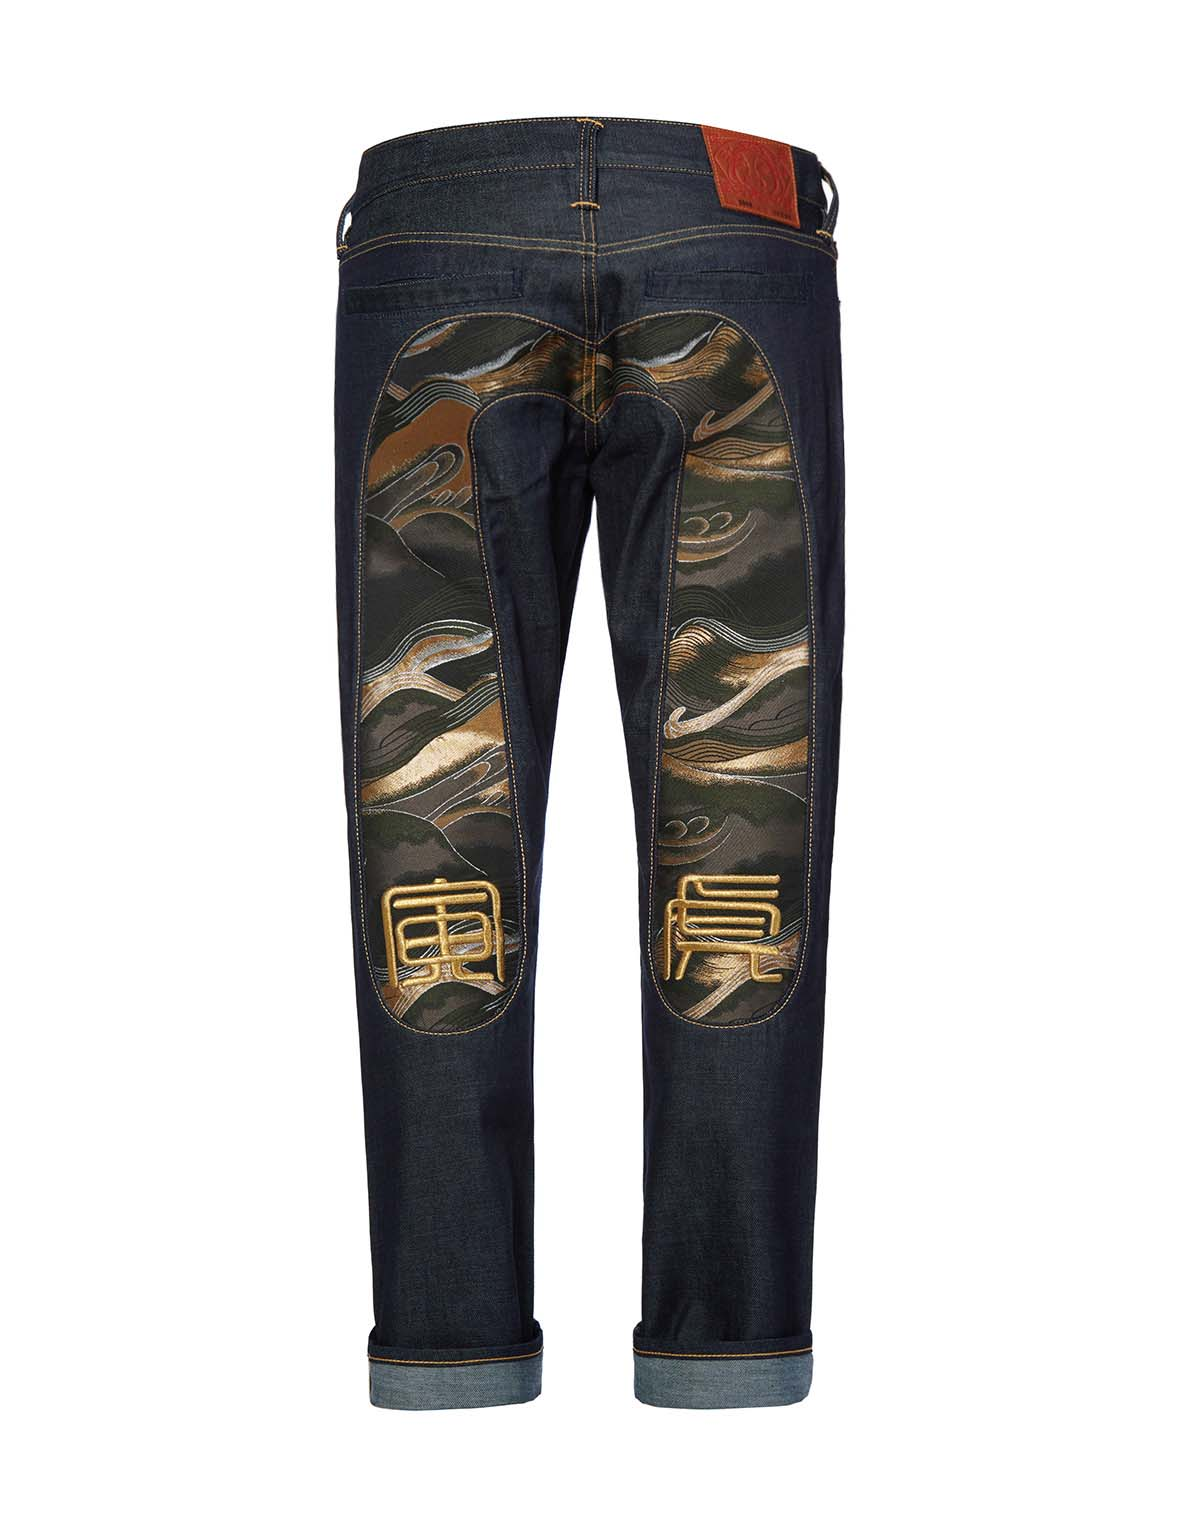 Brocade Daicock Inserted 2008 Regular Fit Jeans